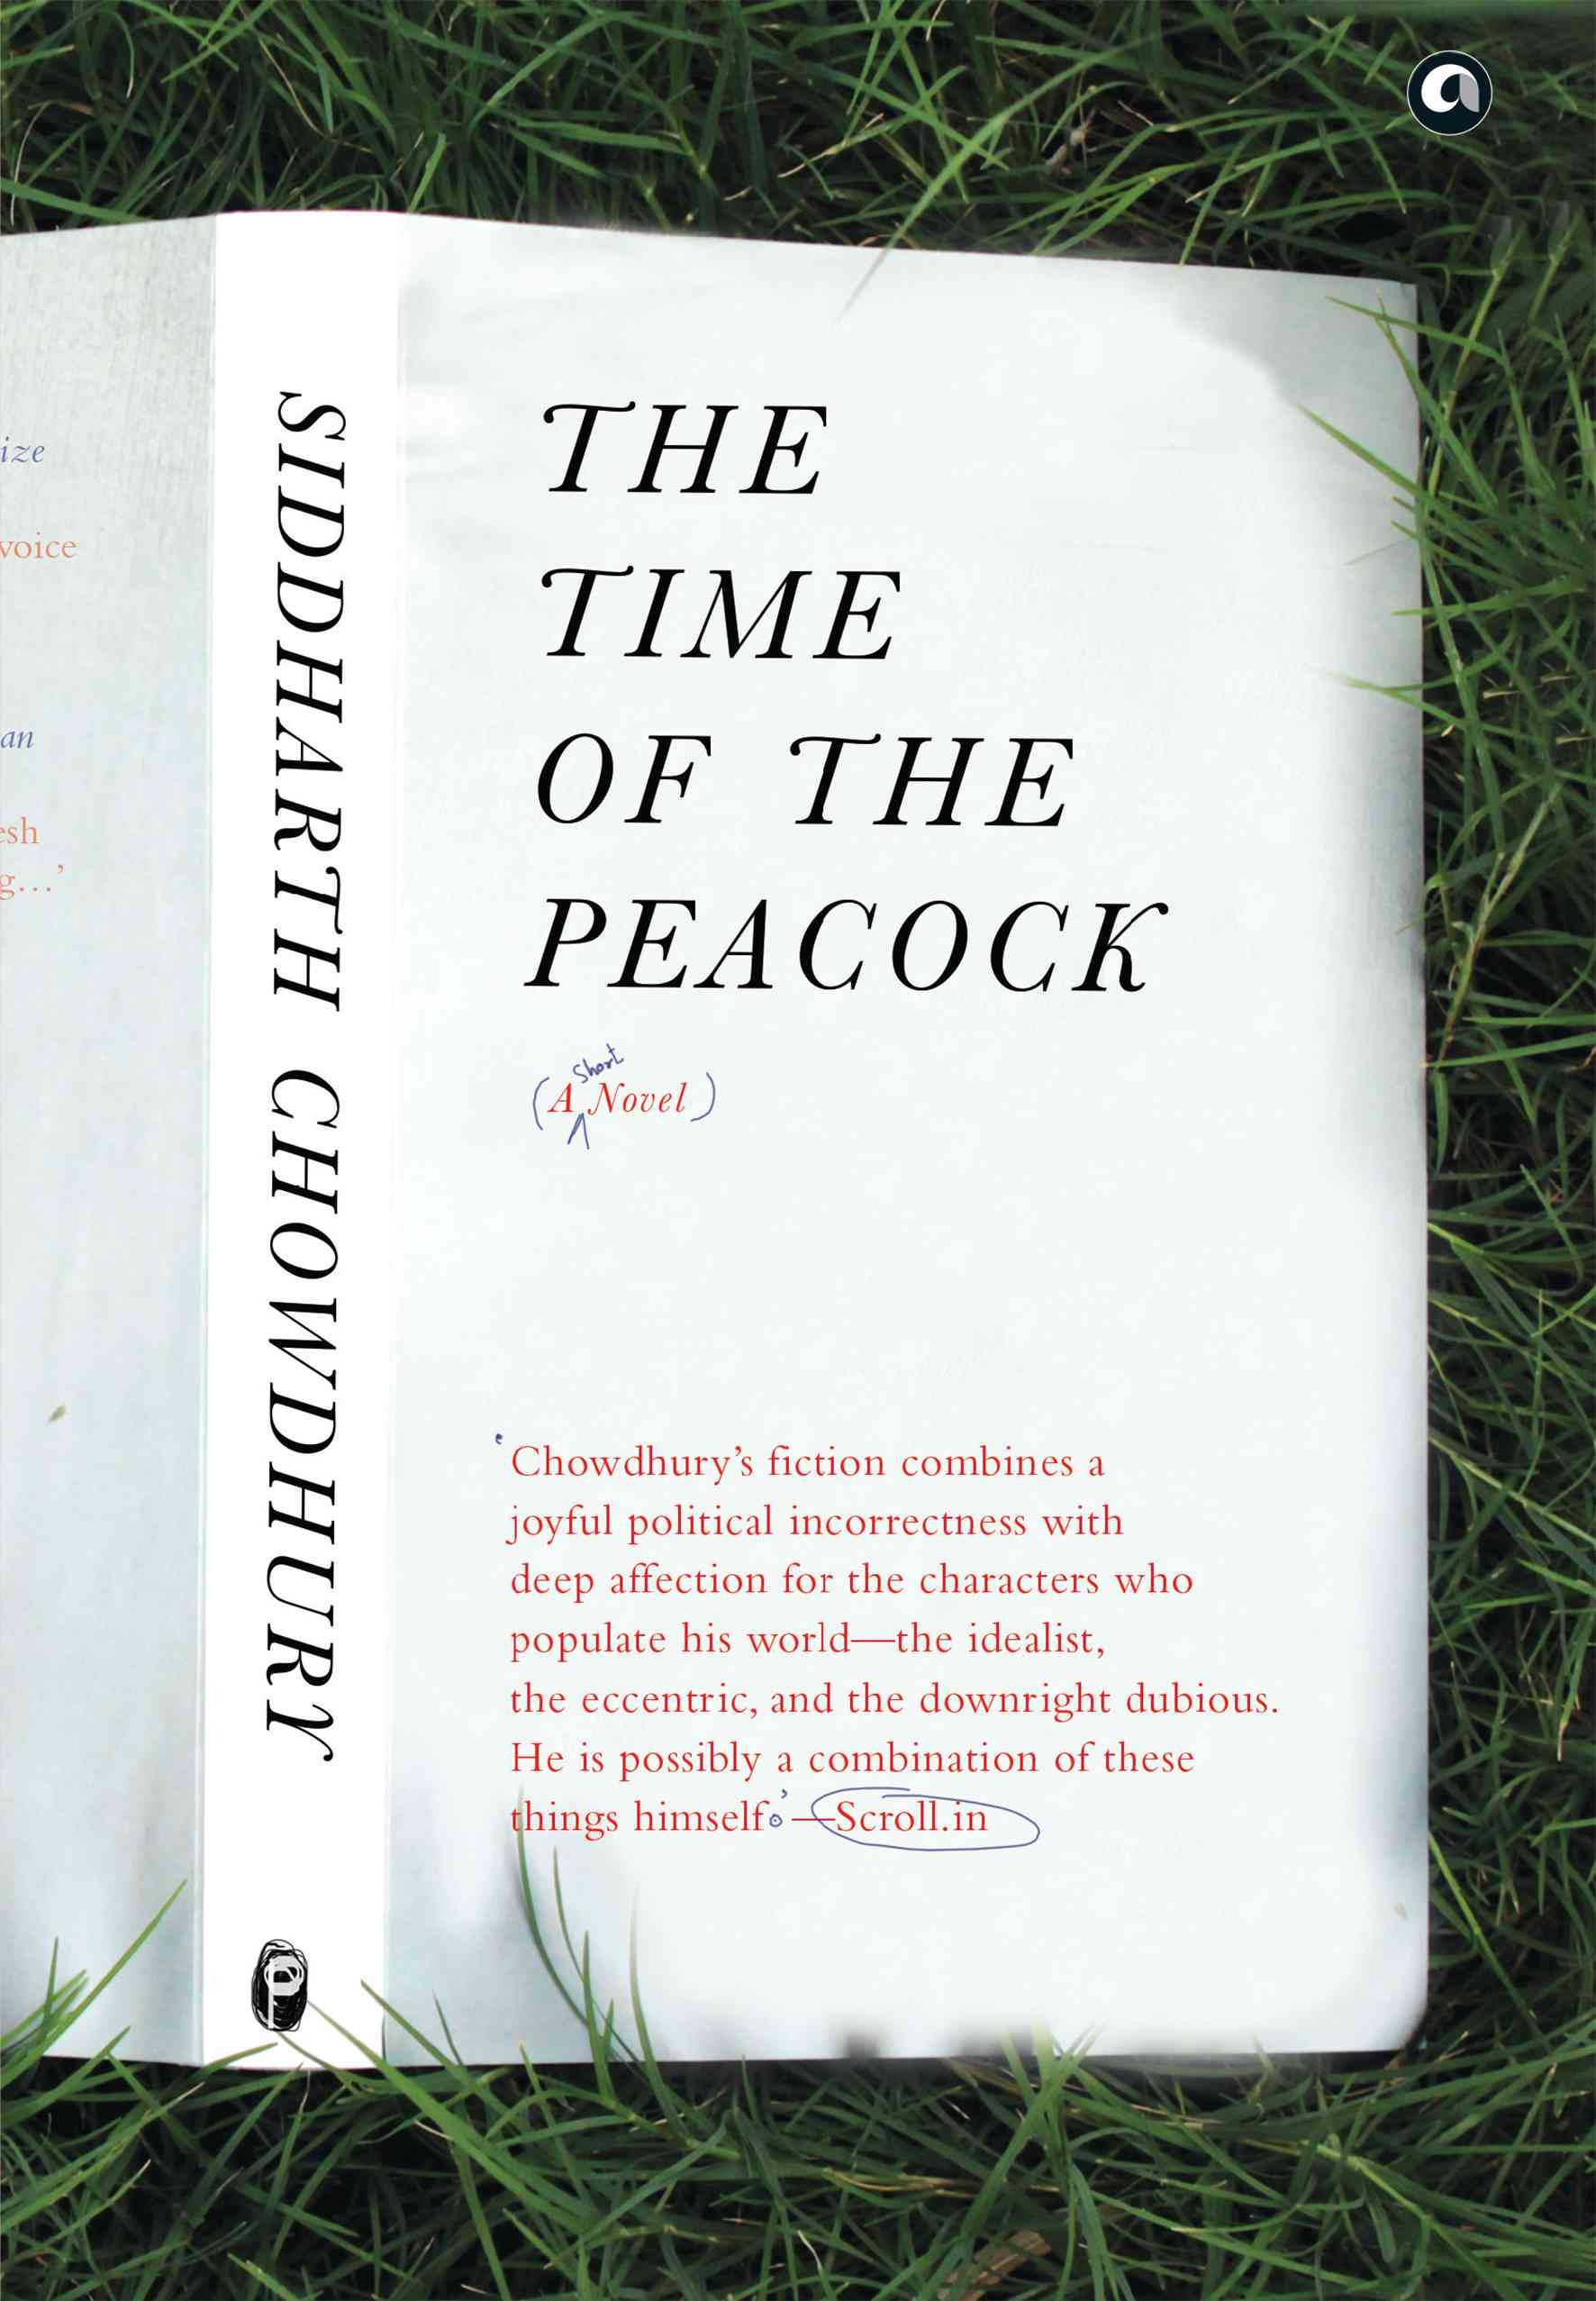 The Time of the Peacock: A Short Novel